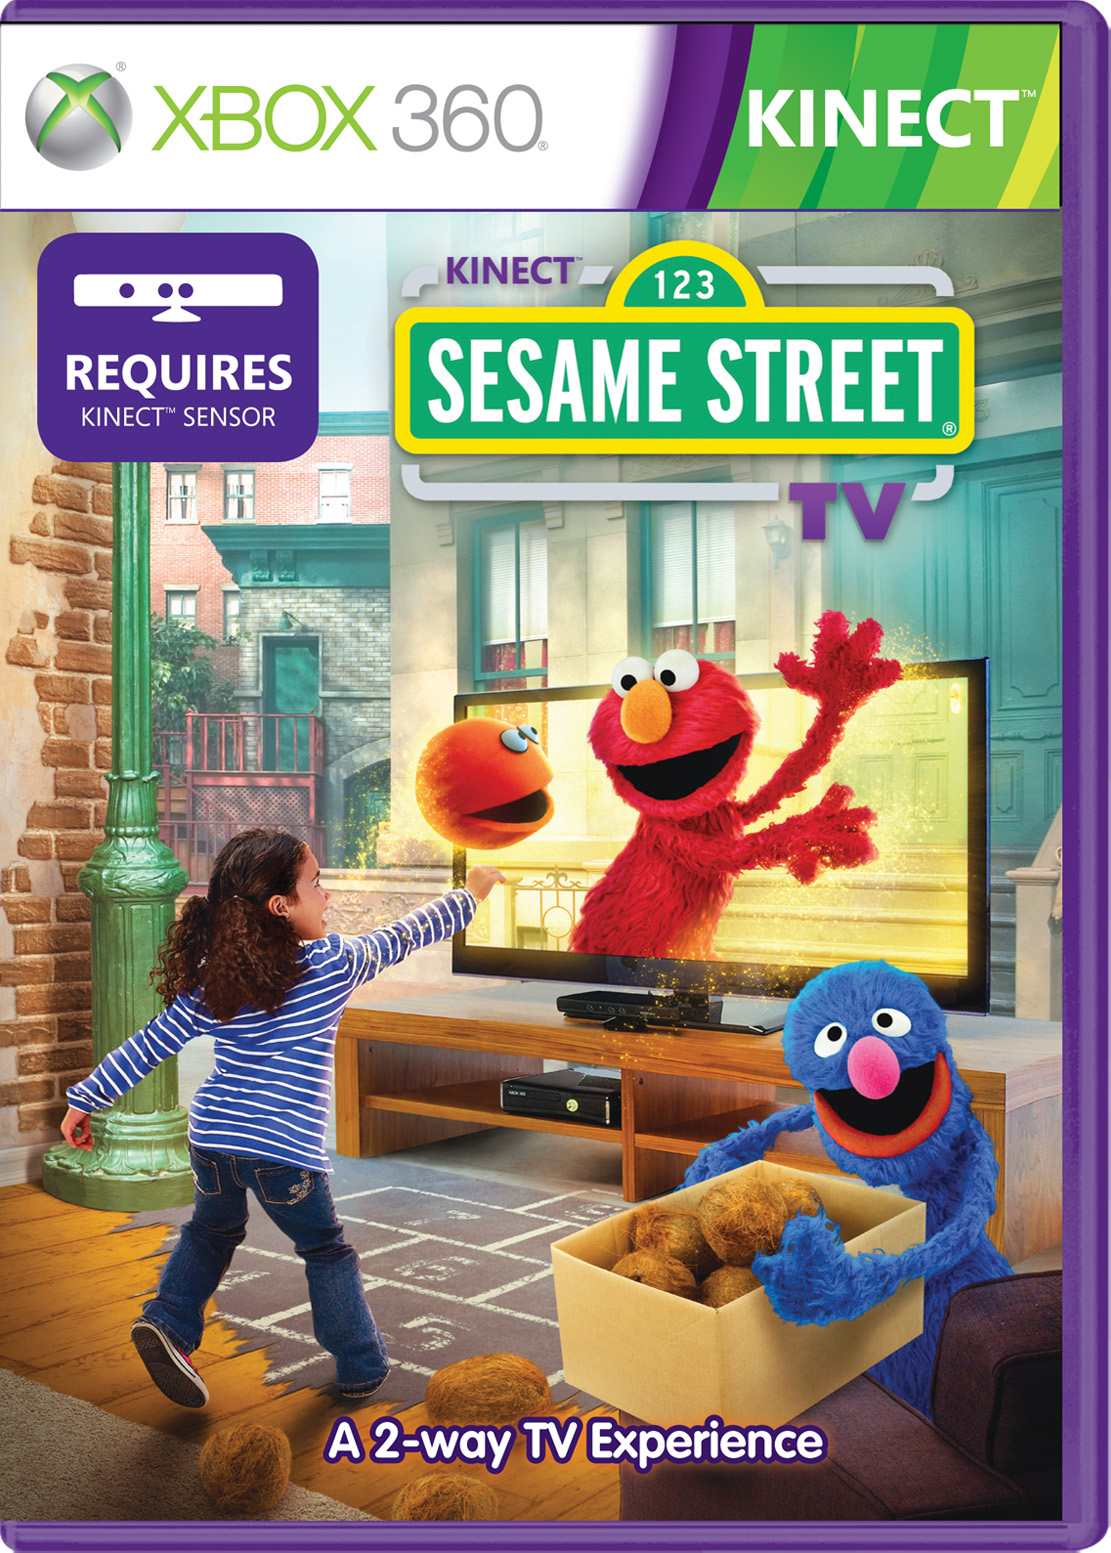 Kinect Sesame Street TV Xbox 360 Game for Kinect